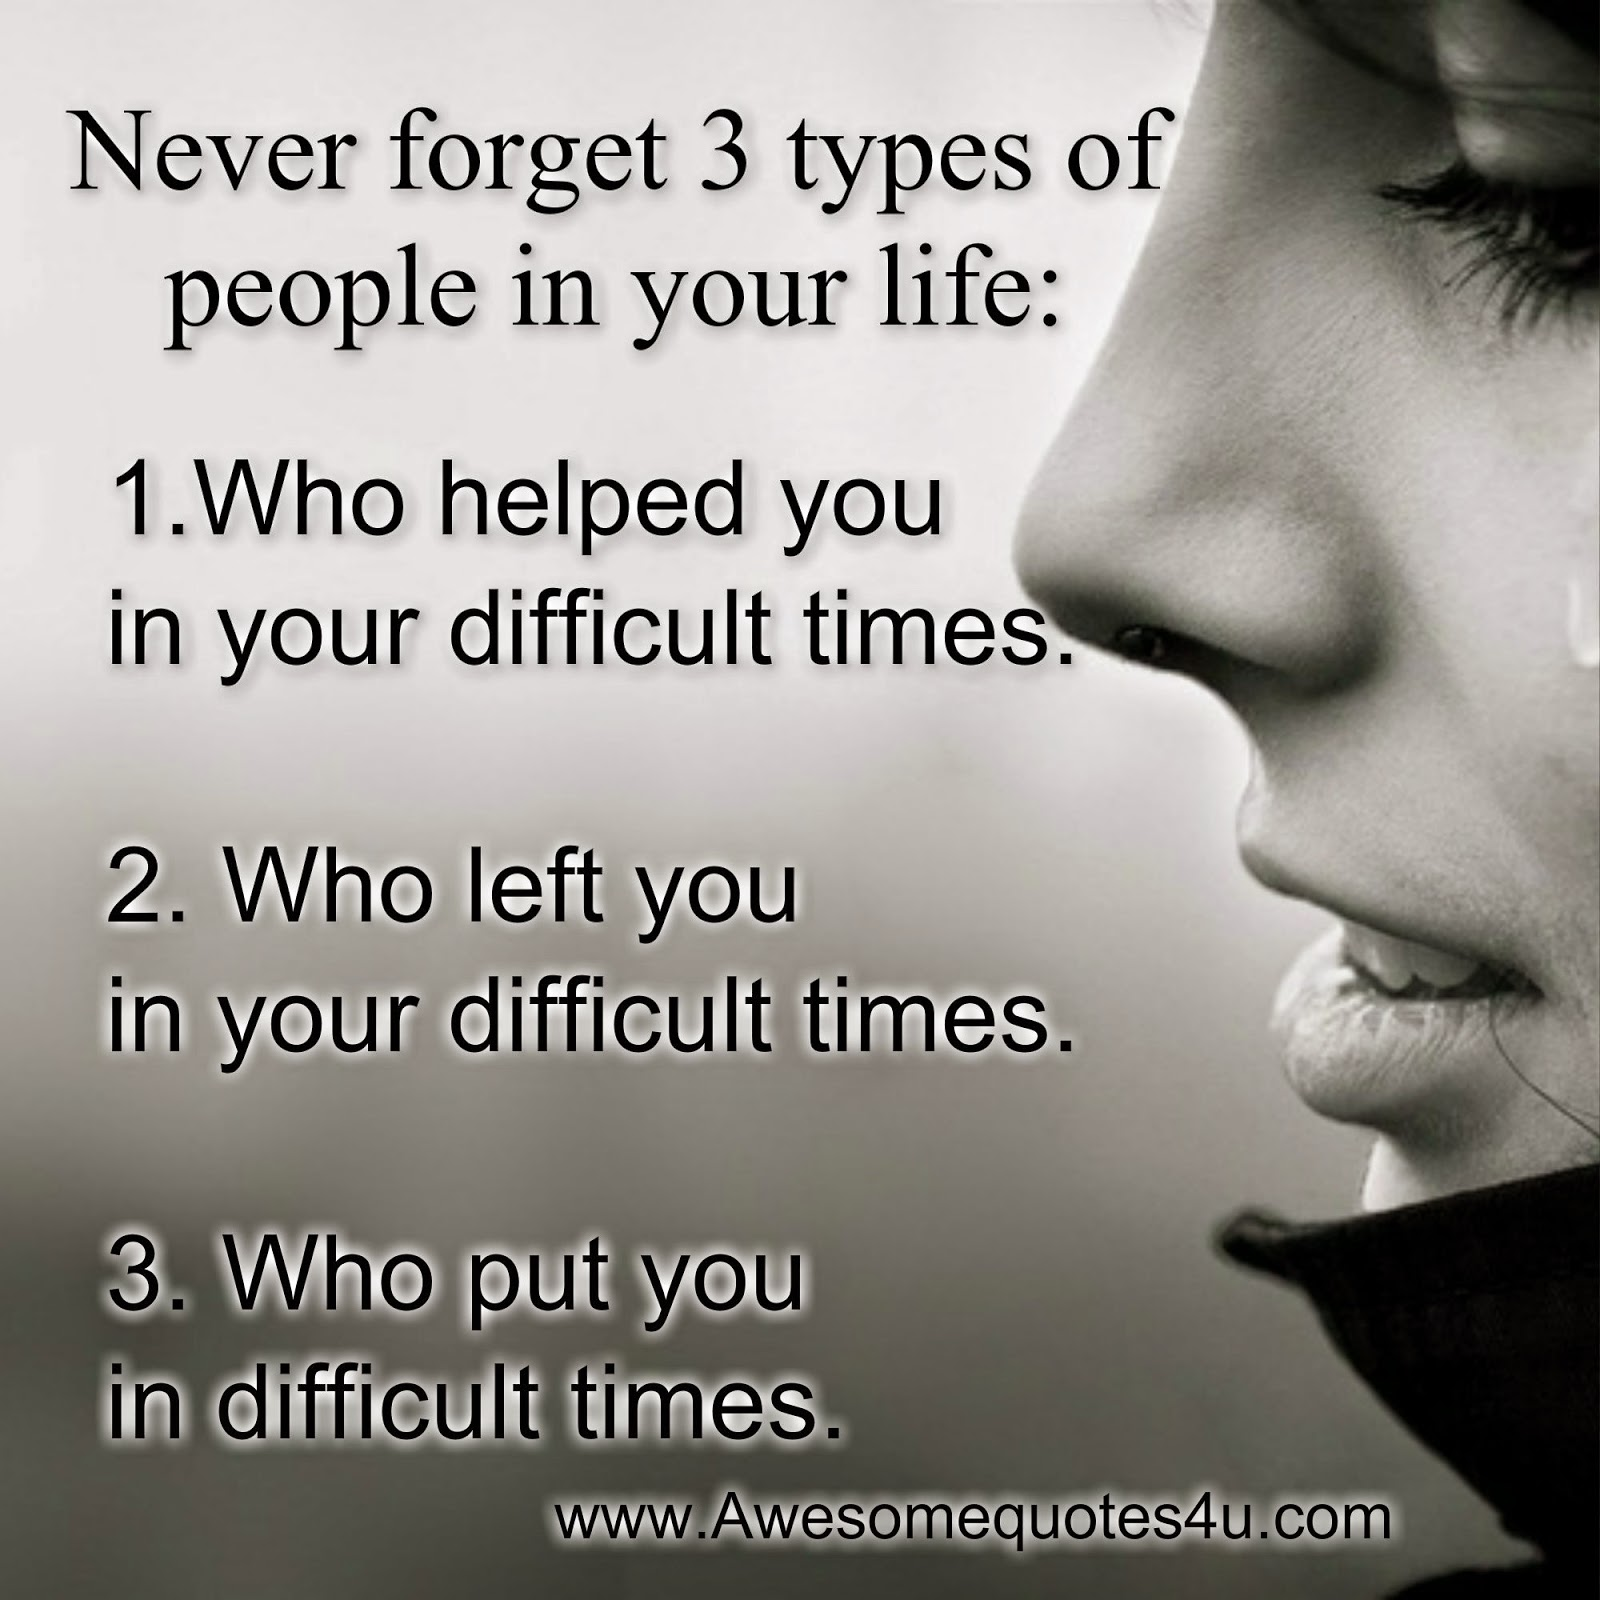 Quotes About A New Person In Your Life: Quotes About The Types Of People In Your Life. QuotesGram